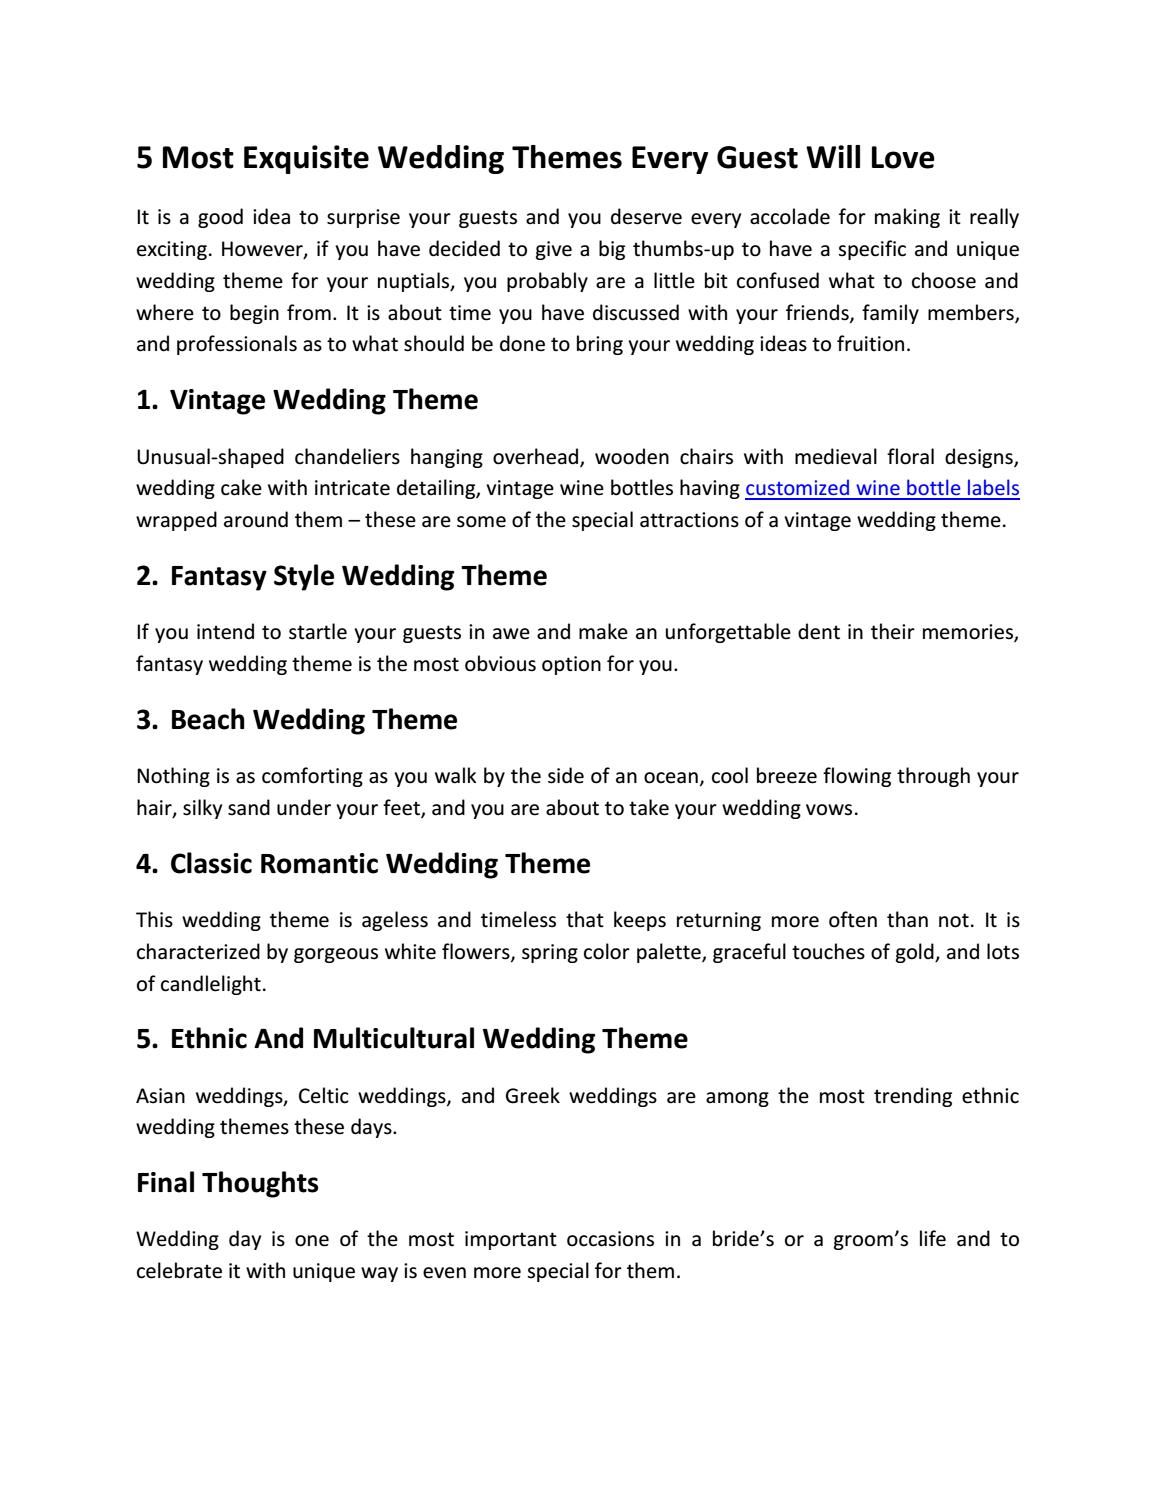 5 Most Exquisite Wedding Themes Every Guest Will Love By Carol Combs